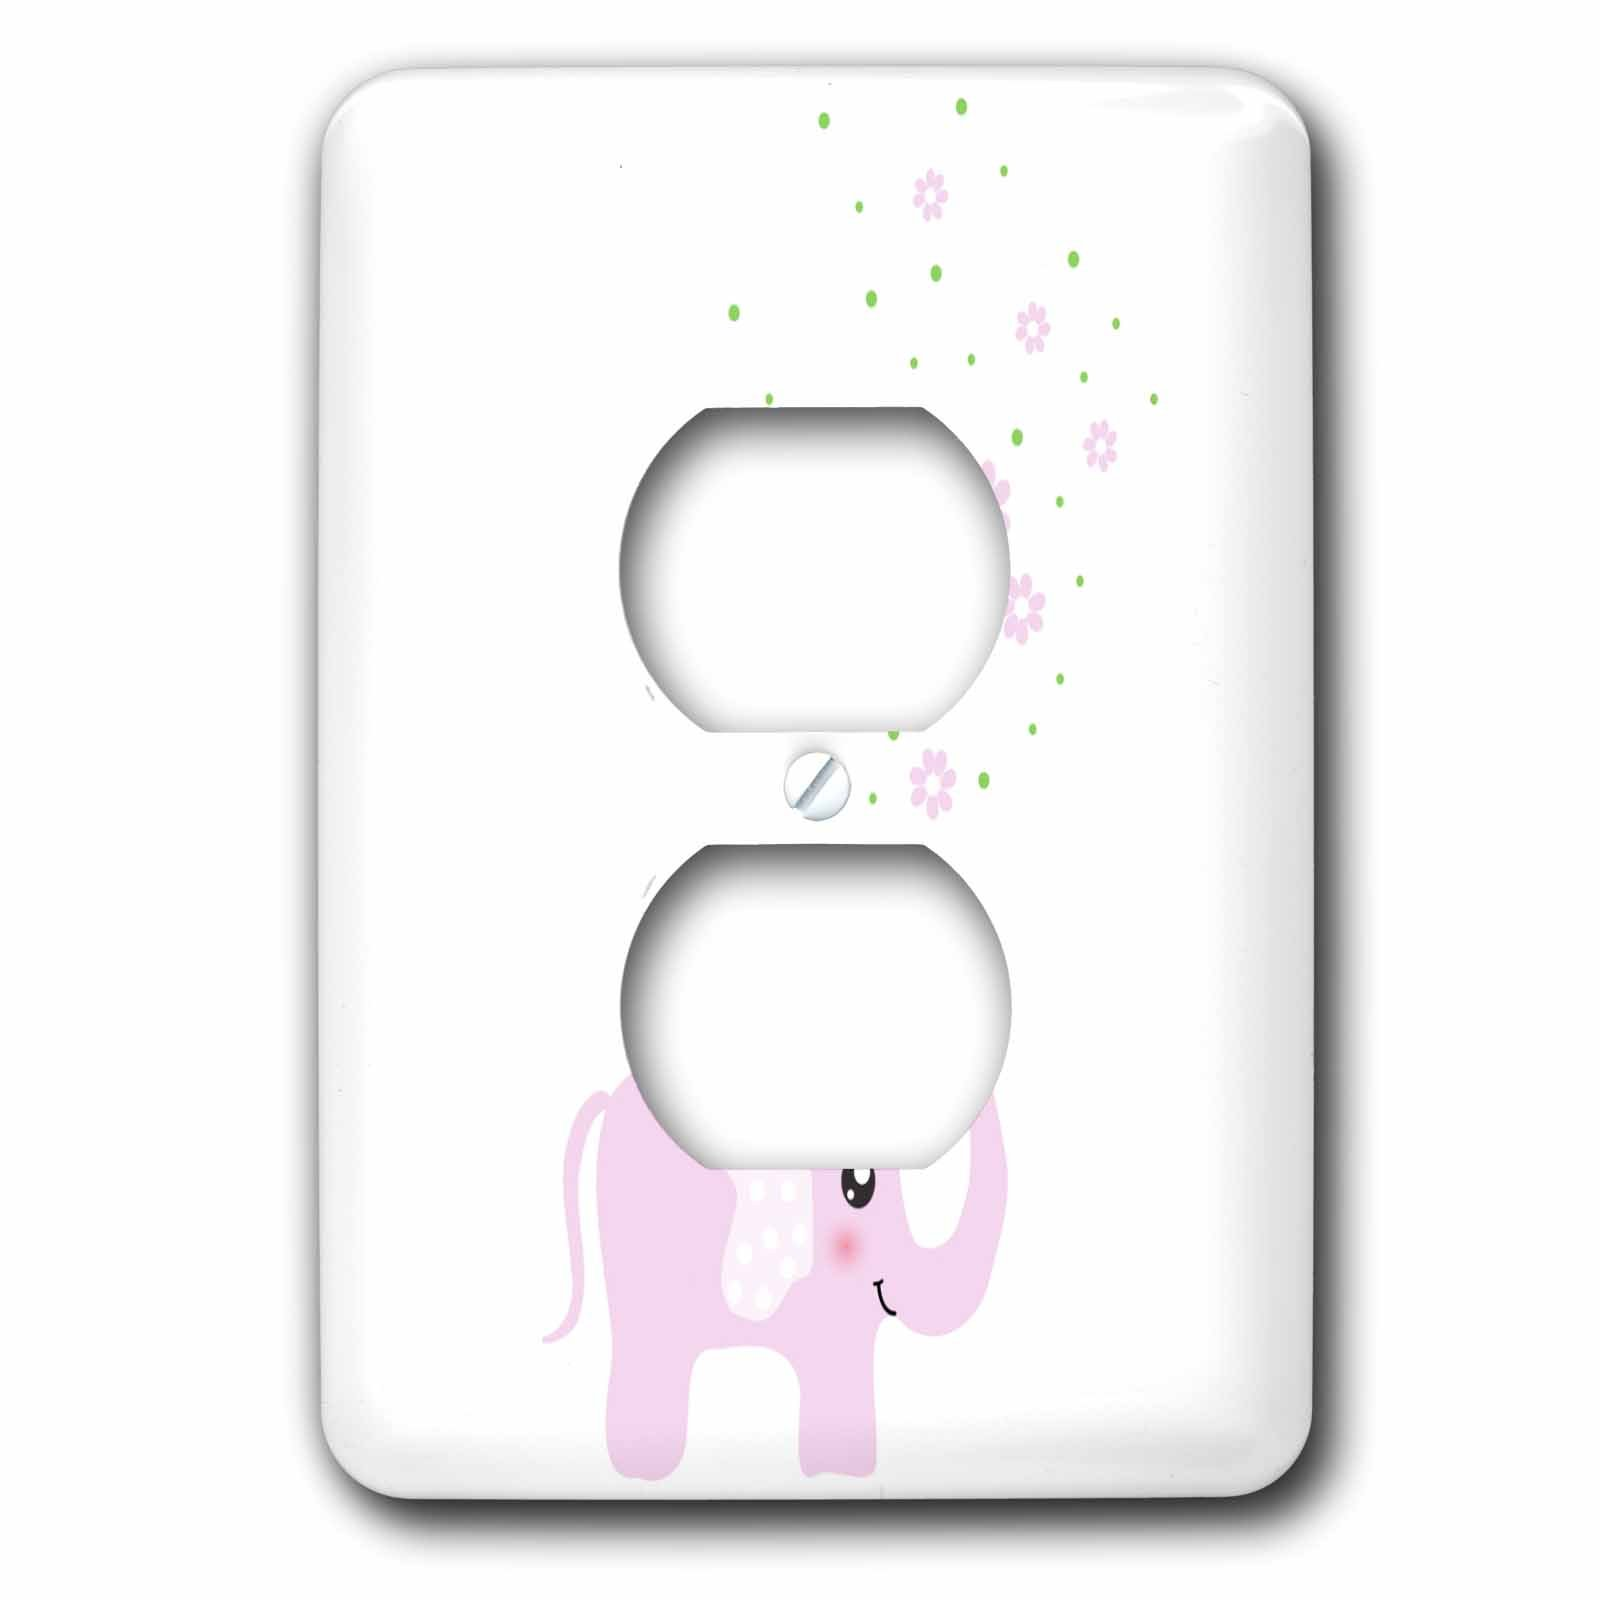 3dRose LLC lsp_113125_6 Cute Pink Elephant Blowing Flowers from Trunk - Girly Kawaii Kids Nursery Animal Baby Girl Cartoon 2 Plug Outlet Cover